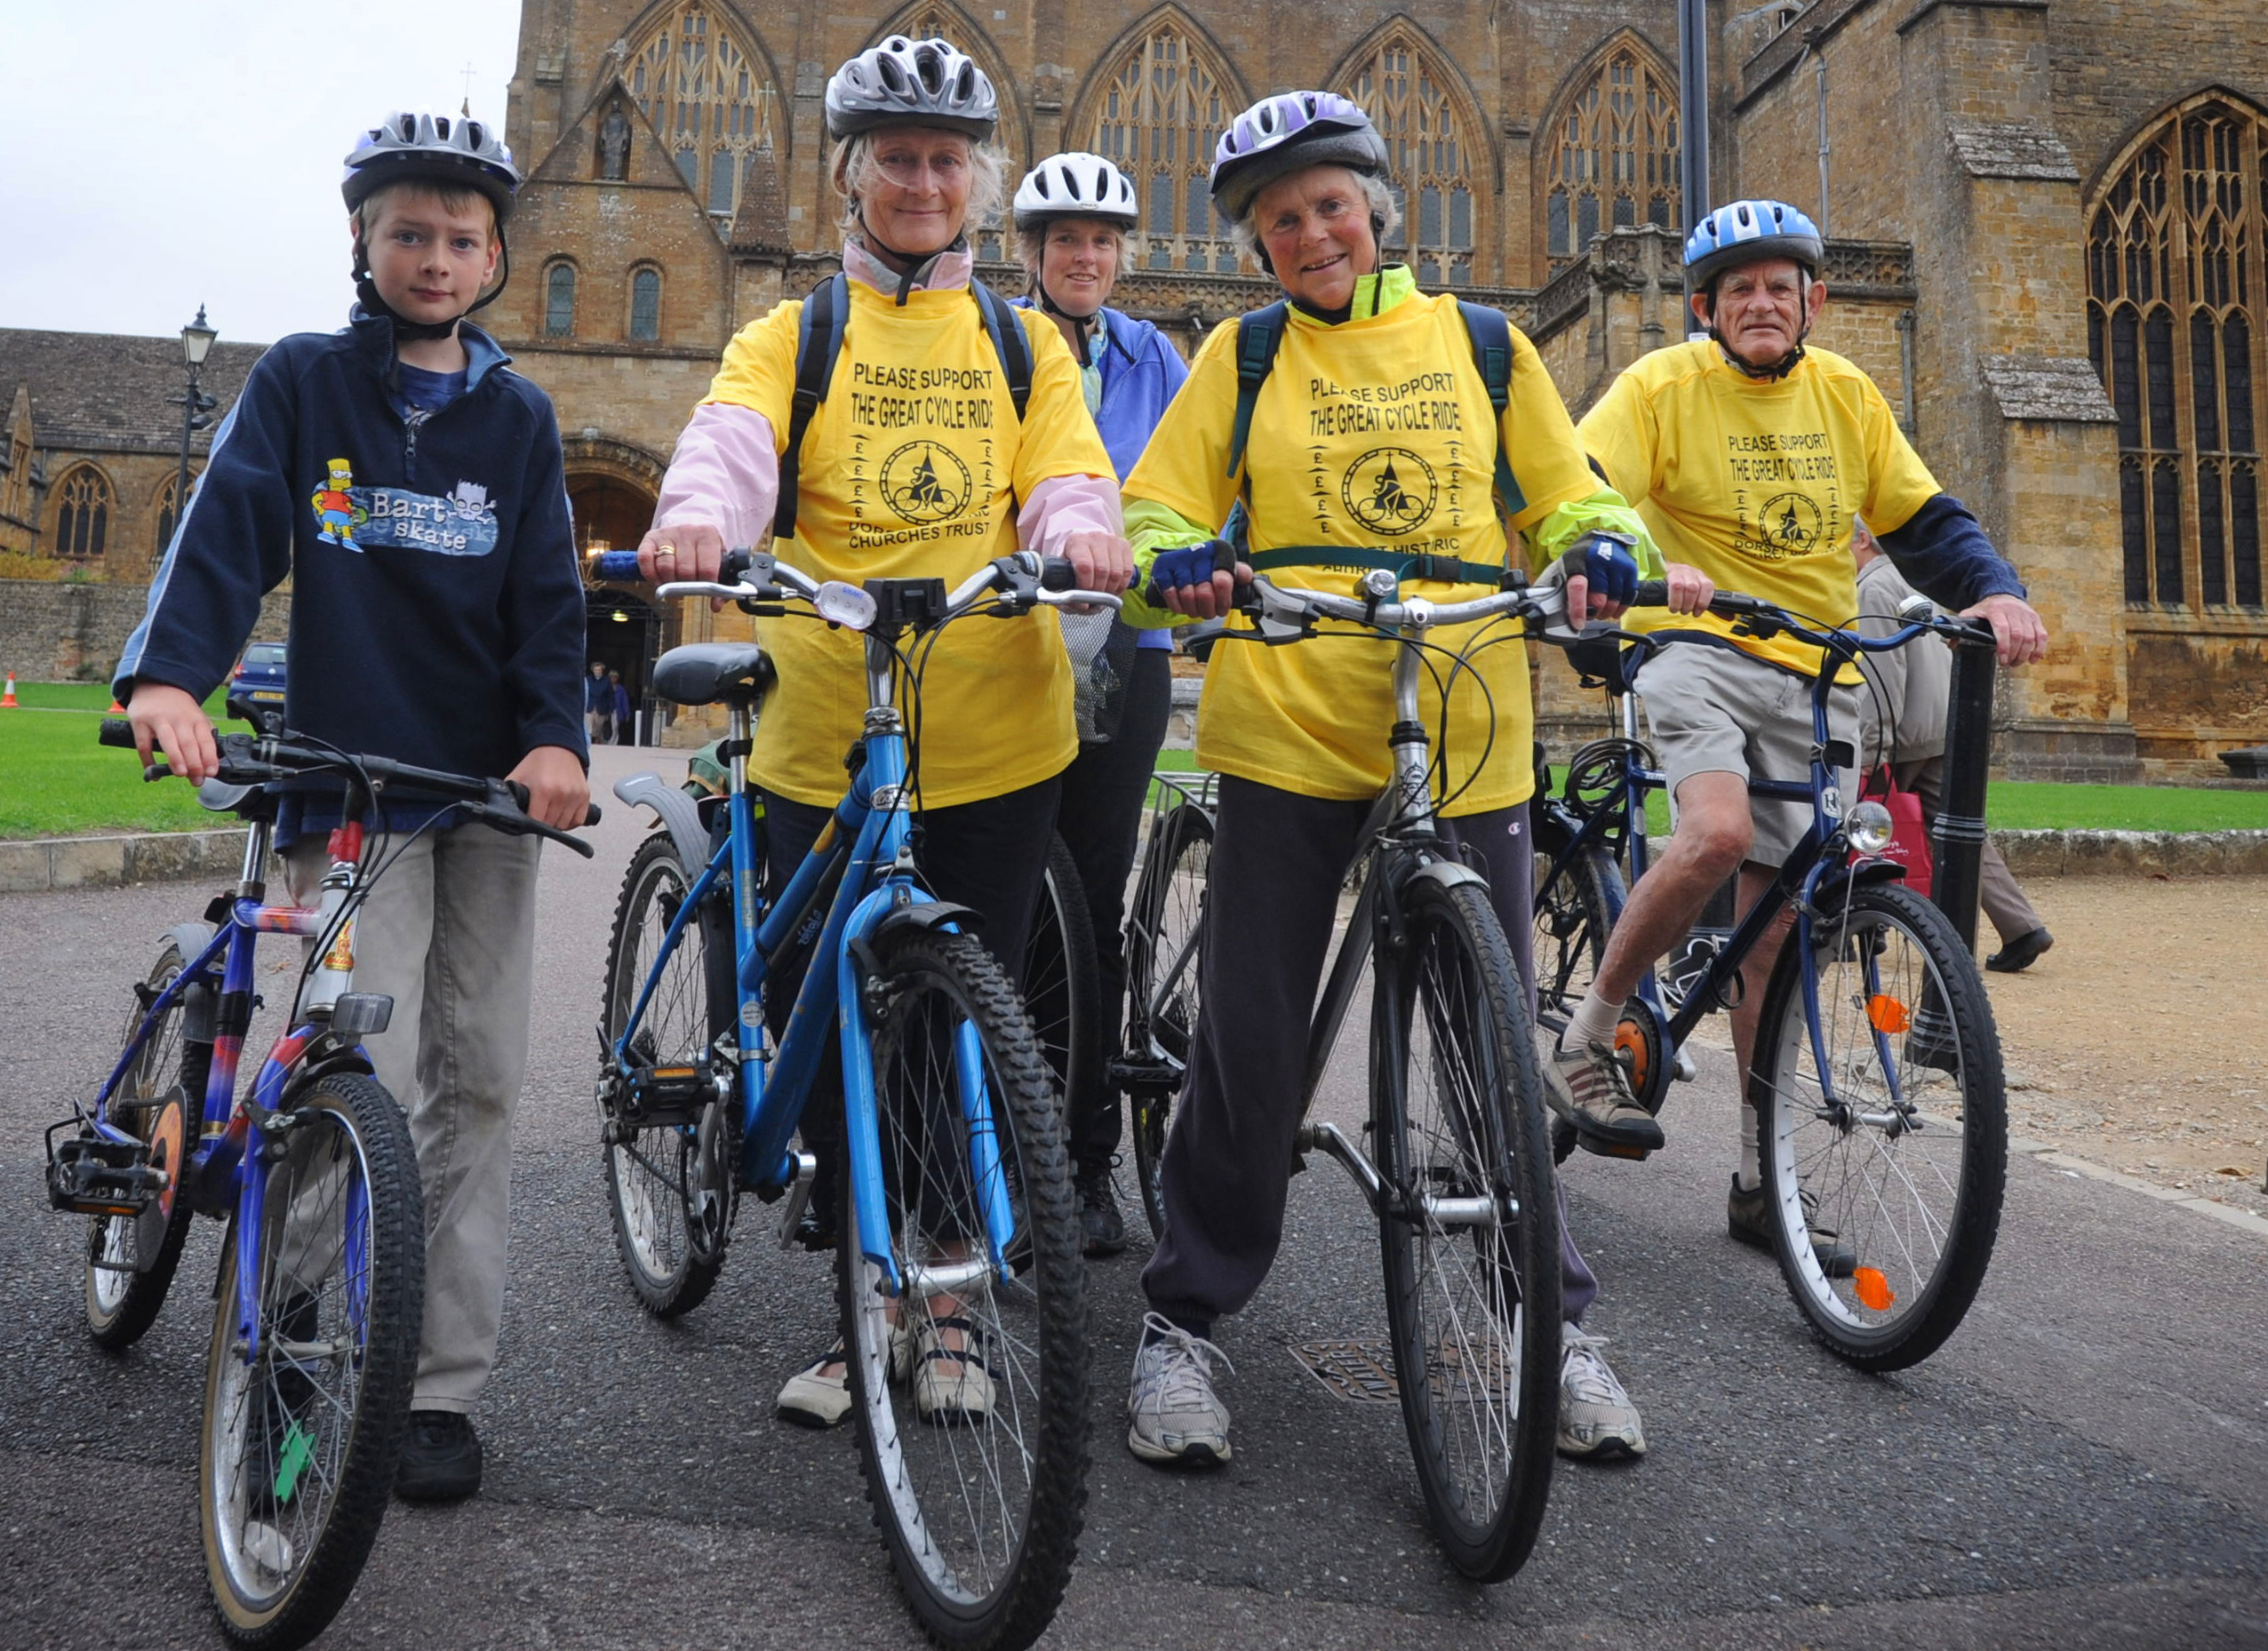 Sherborne Ride + Stride cyclers